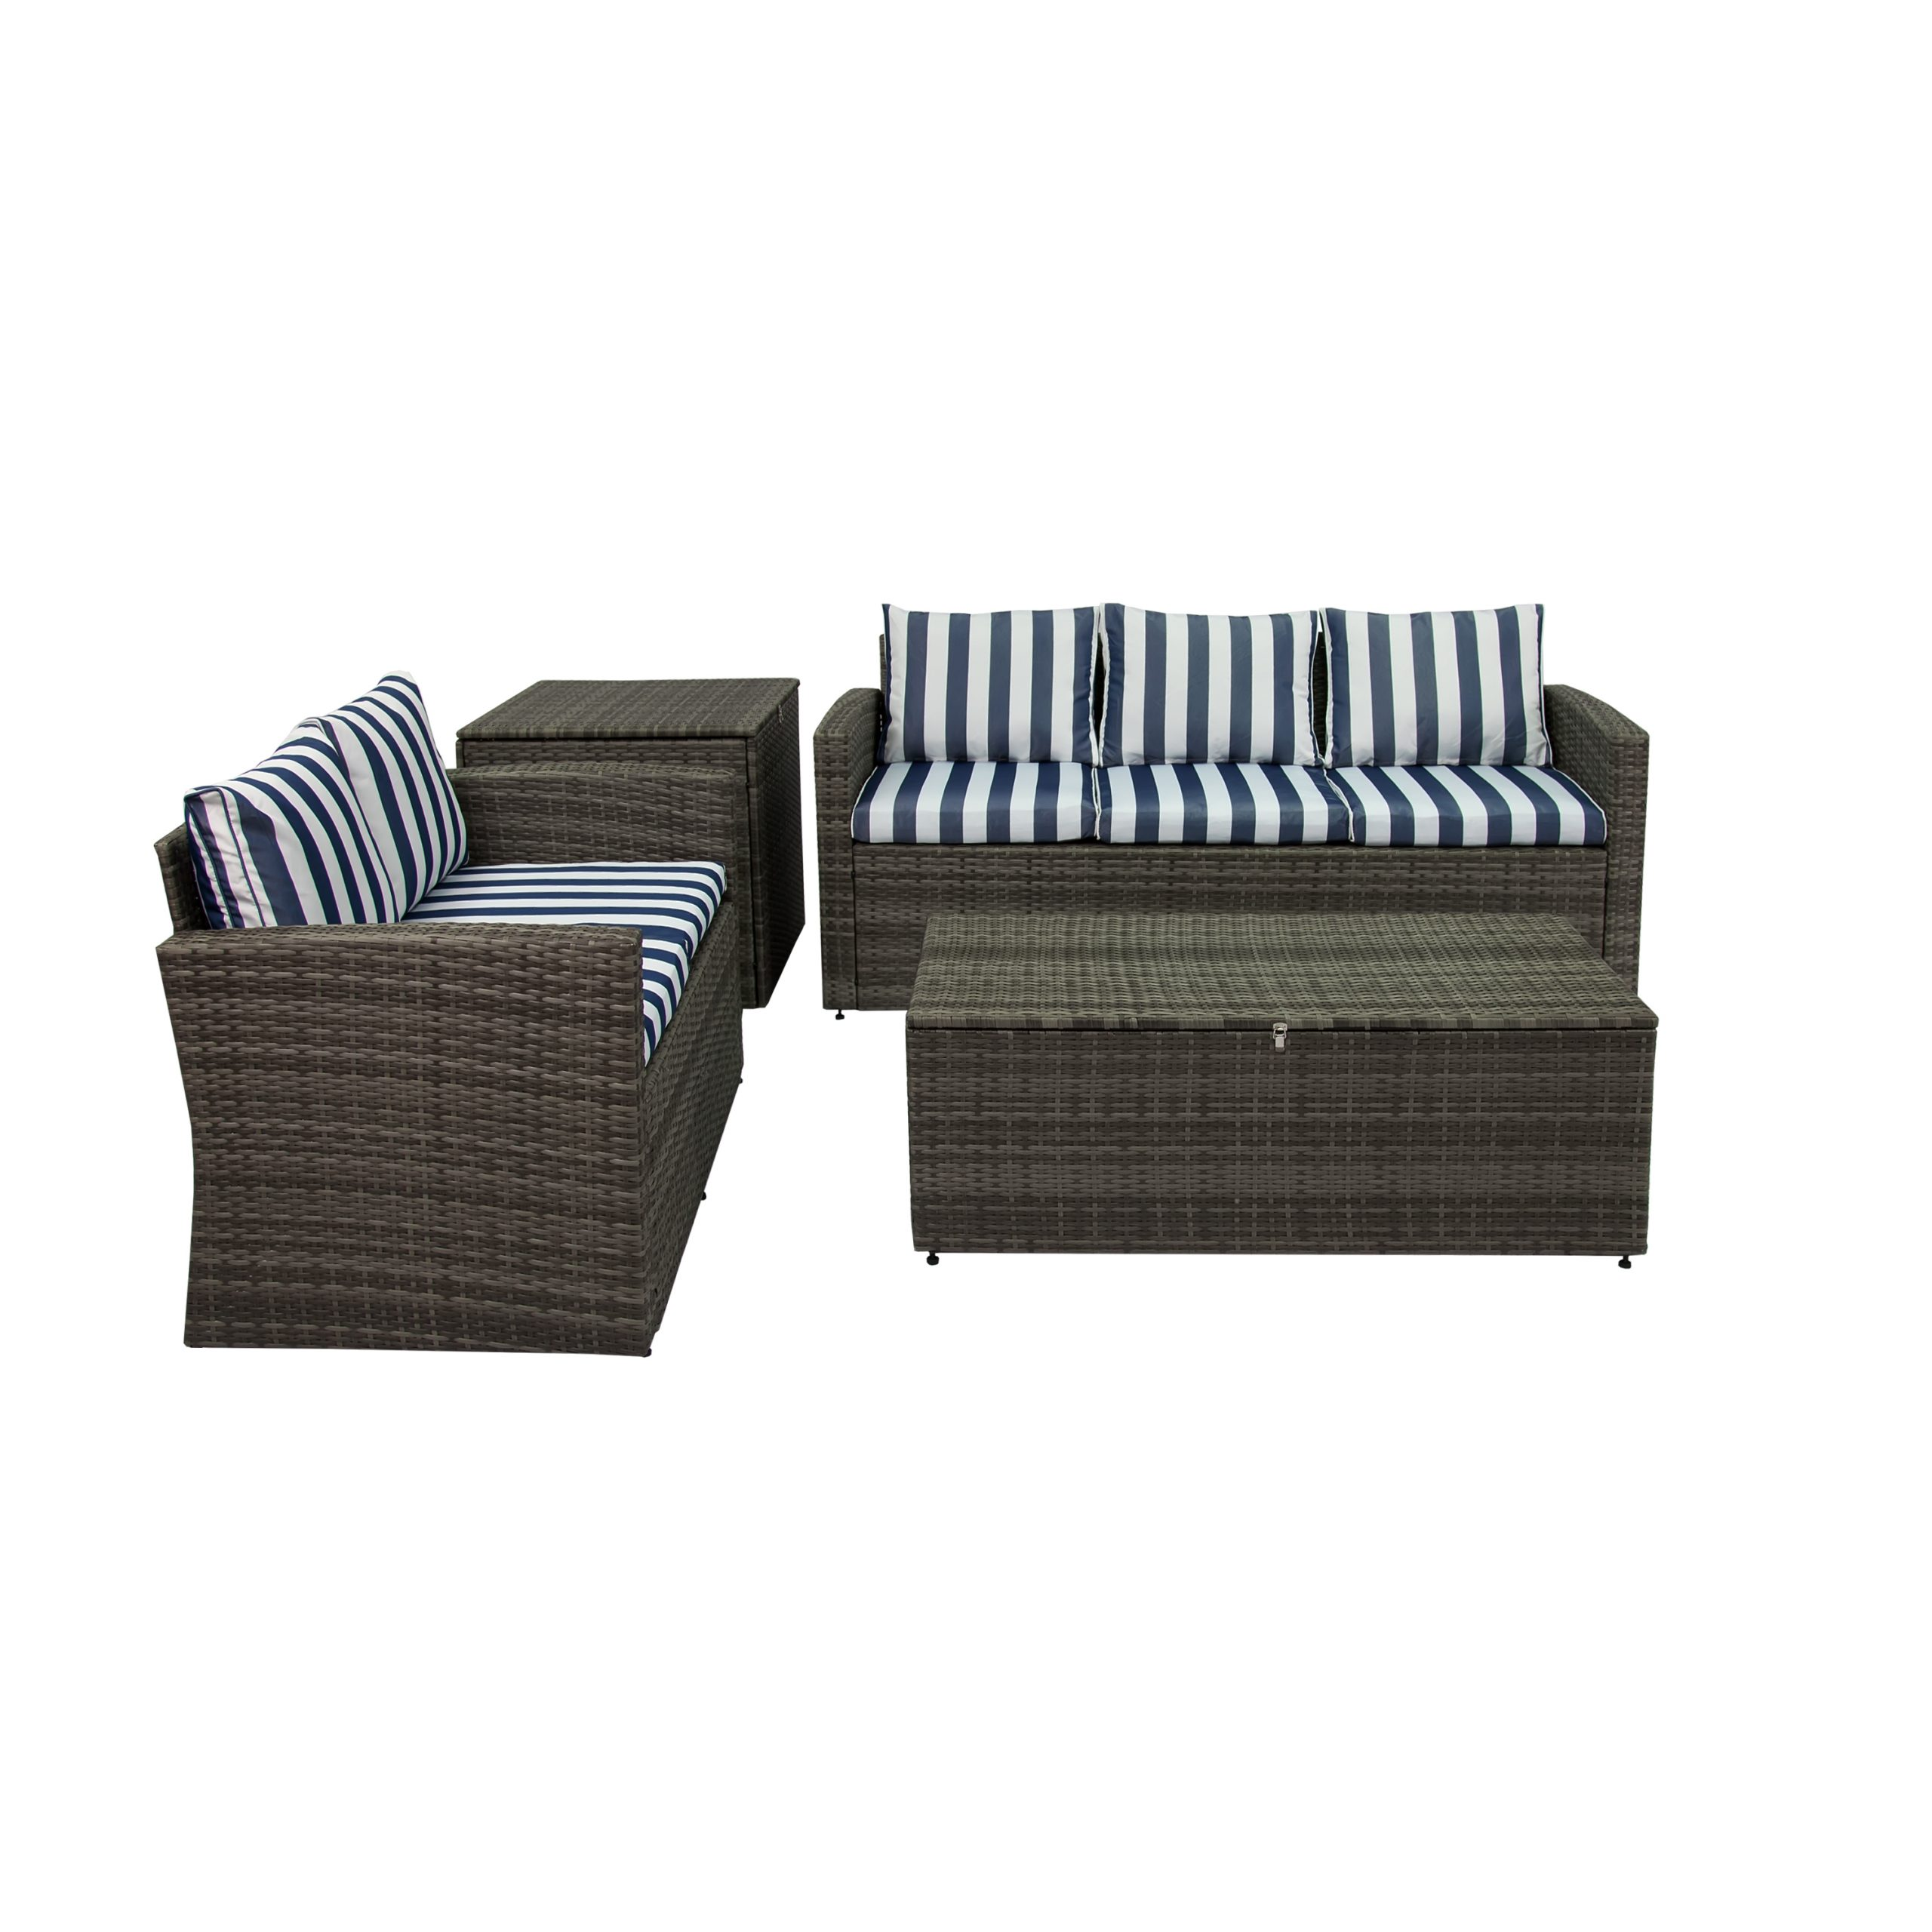 Widely Used Rio 4 Piece All Weather Wicker Conversation Set With Storage Pertaining To Oceanside Outdoor Wicker Loveseats With Cushions (View 25 of 25)